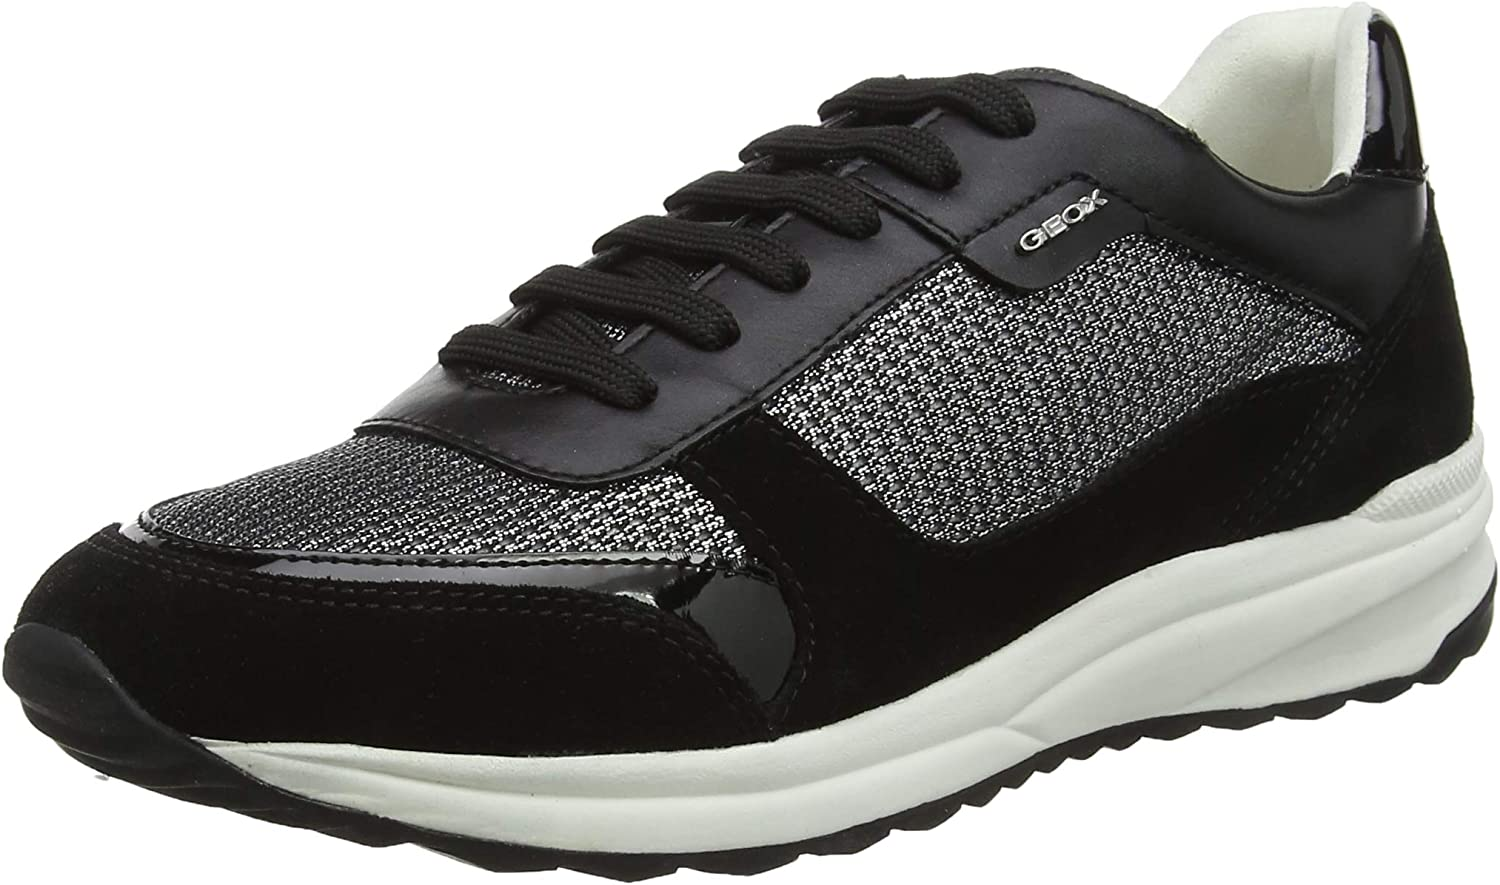 Geox Women's Airell C Sneaker shoes